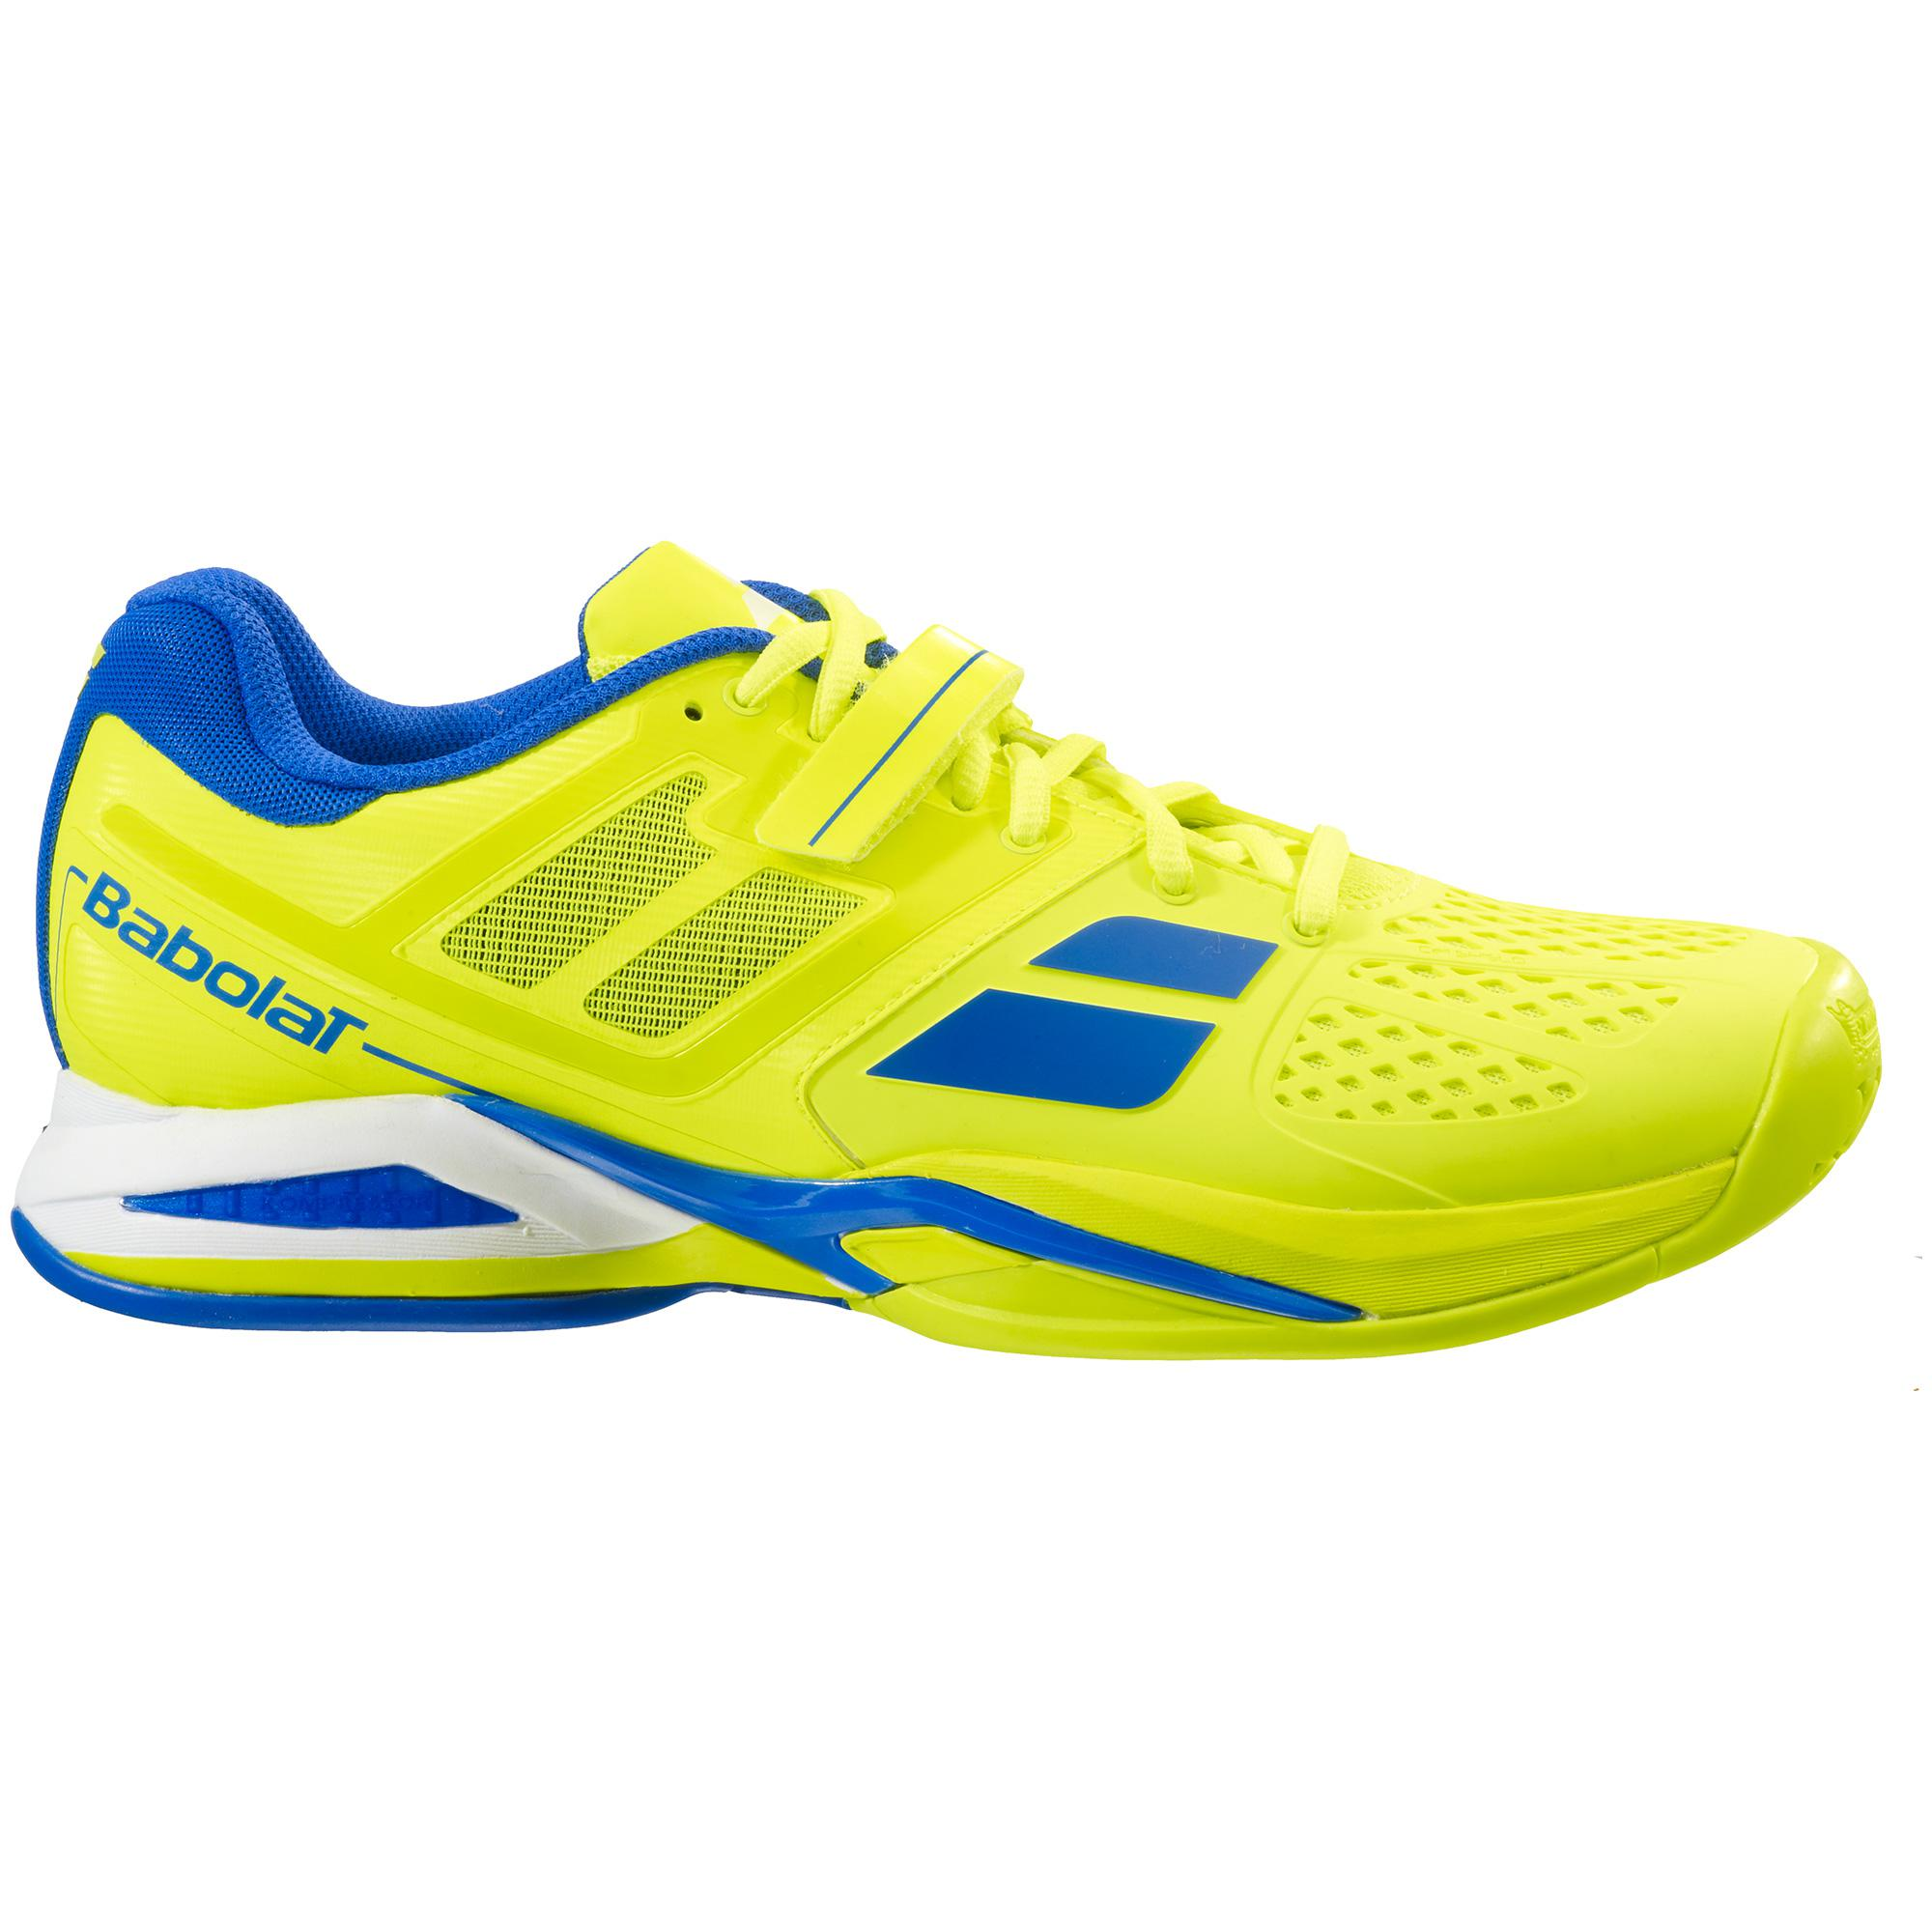 Babolat Tennis Shoes >> Babolat Mens Propulse All Court Tennis Shoes - Yellow/Blue - Tennisnuts.com